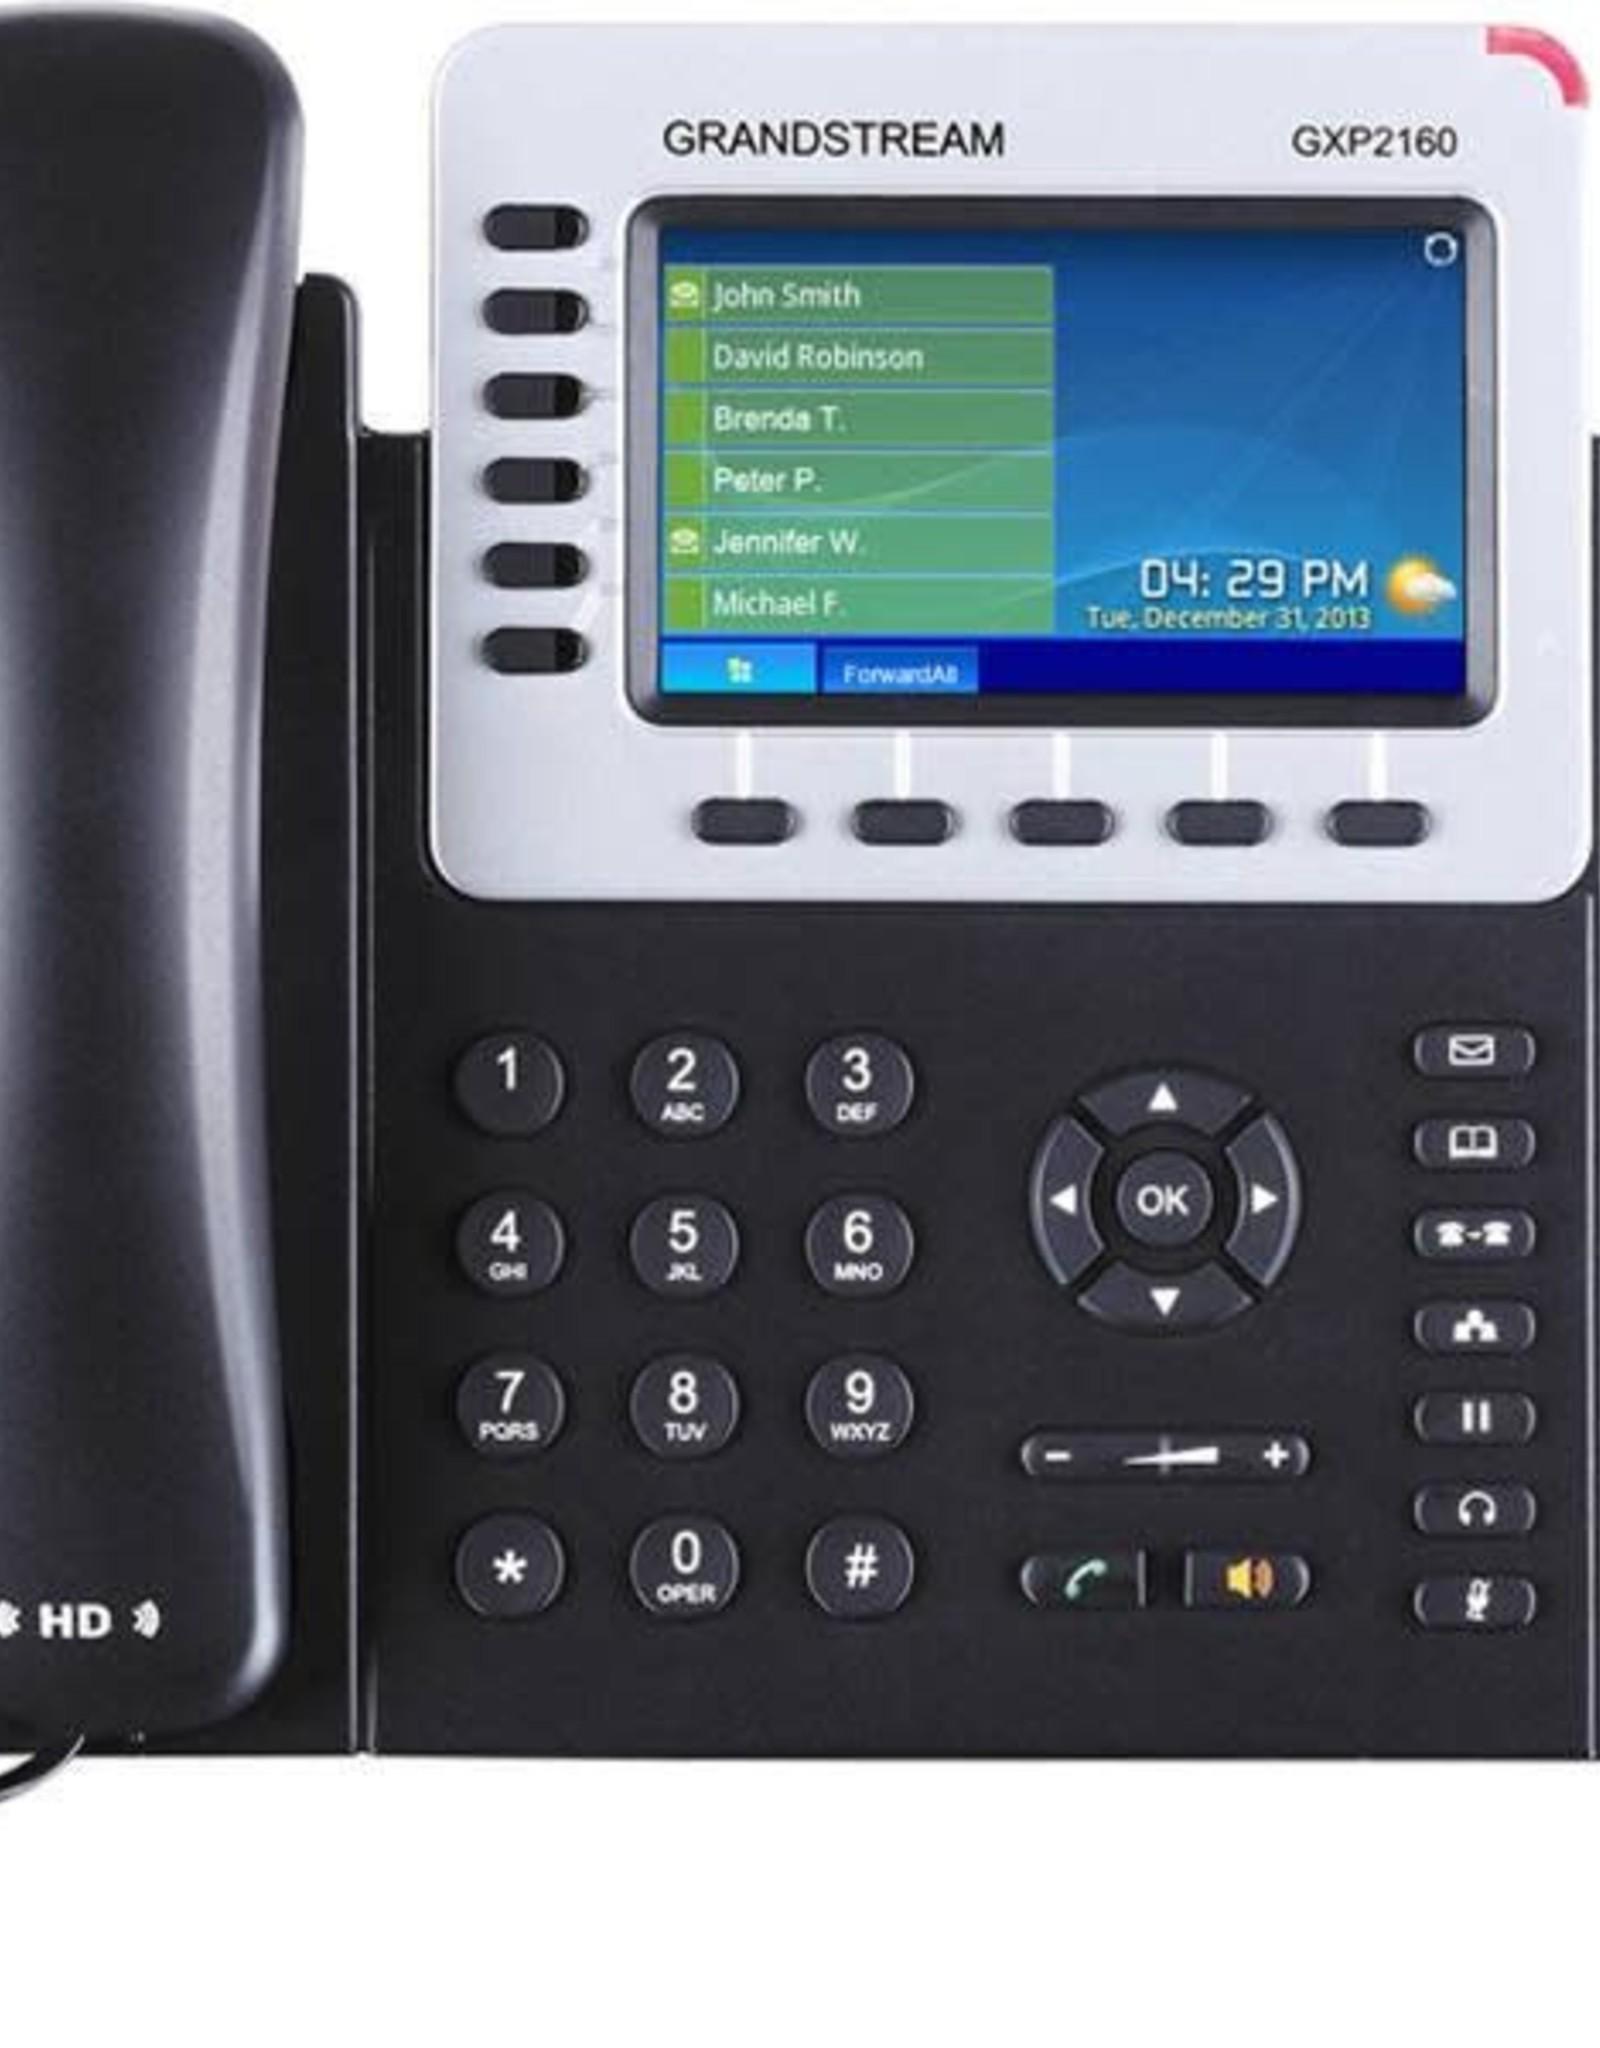 Grandstream GXP2160 Enterprise IP Phone - VoIP phone GXP2160